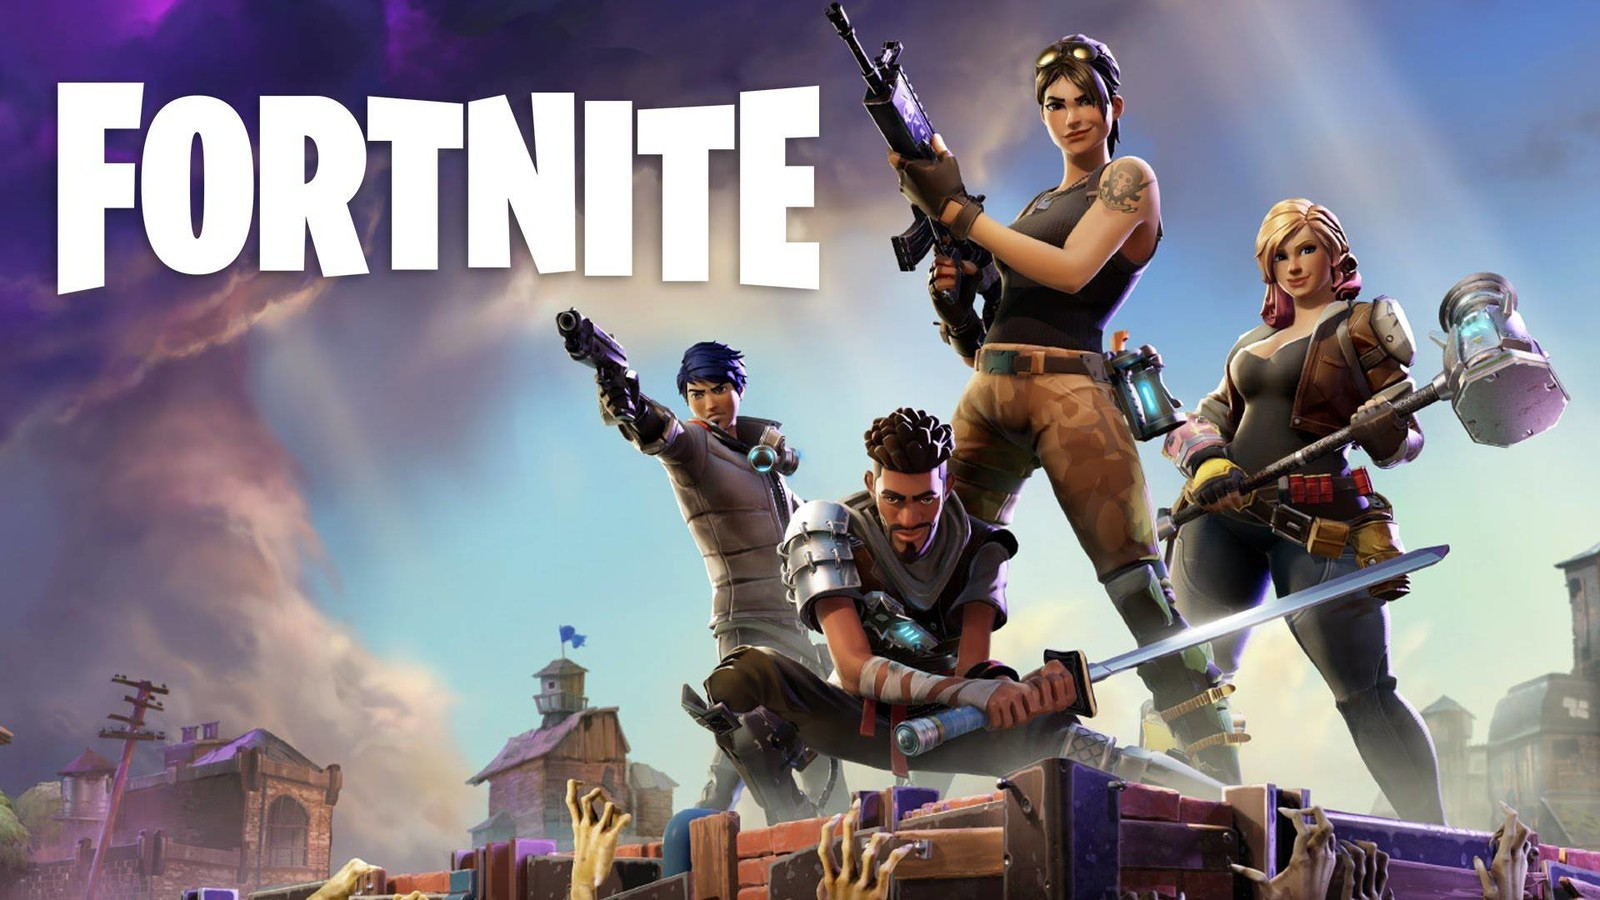 【GETVBUCKS.ONLINE FORTNITE】 Vbucks and Extra Vbucks FOR ANDROID IOS PC PLAYSTATION | 100% WORKING METHOD | GET UNLIMITED RESOURCES NOW